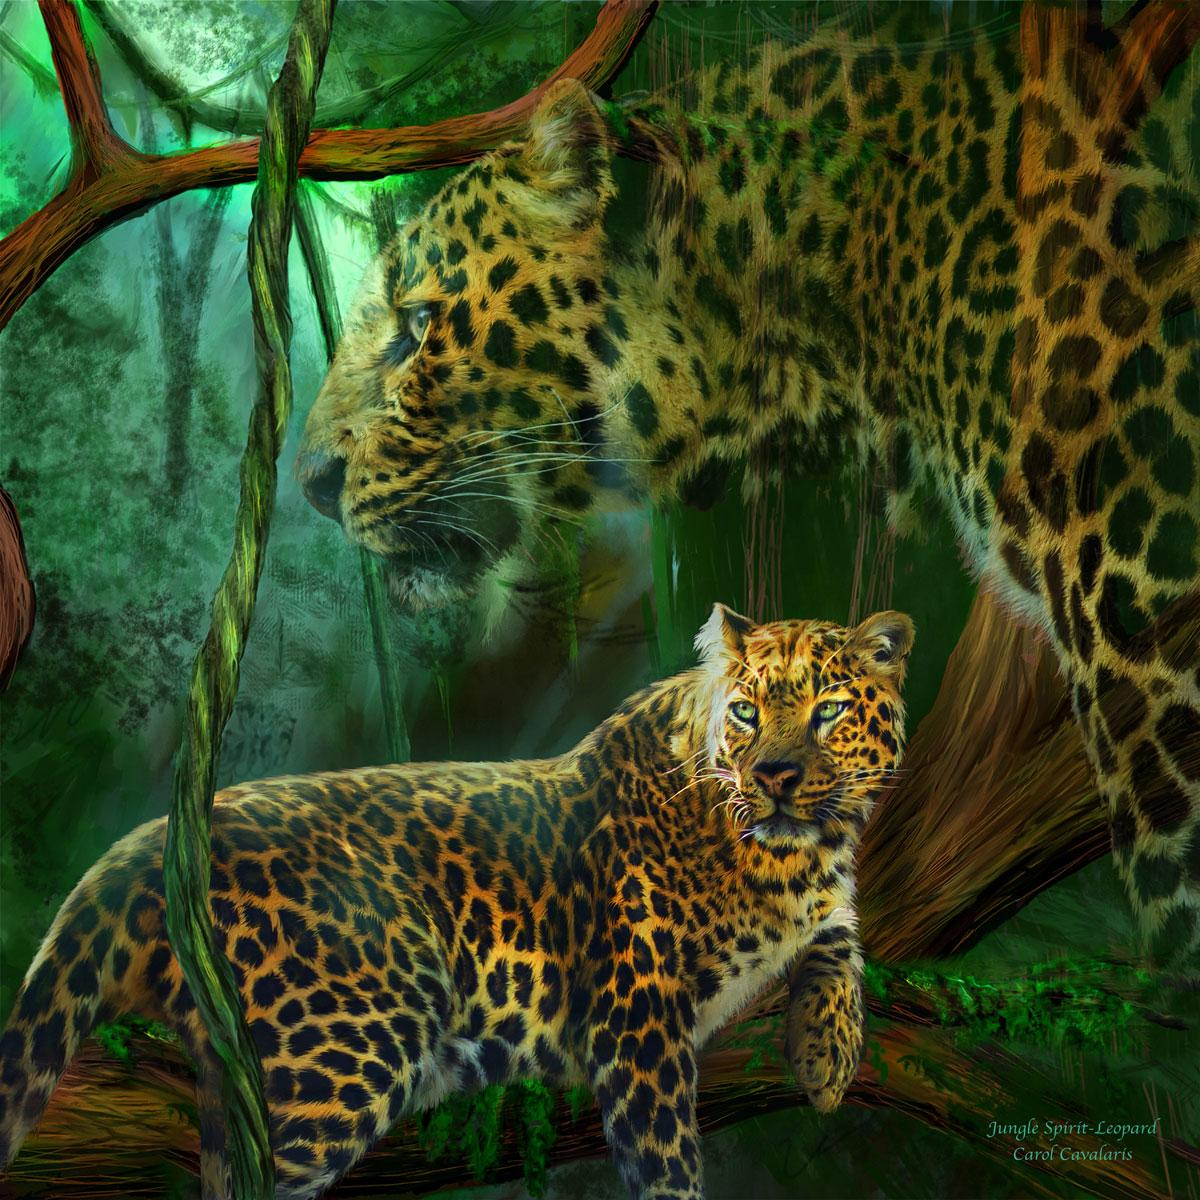 Jungle Spirit - Leopard